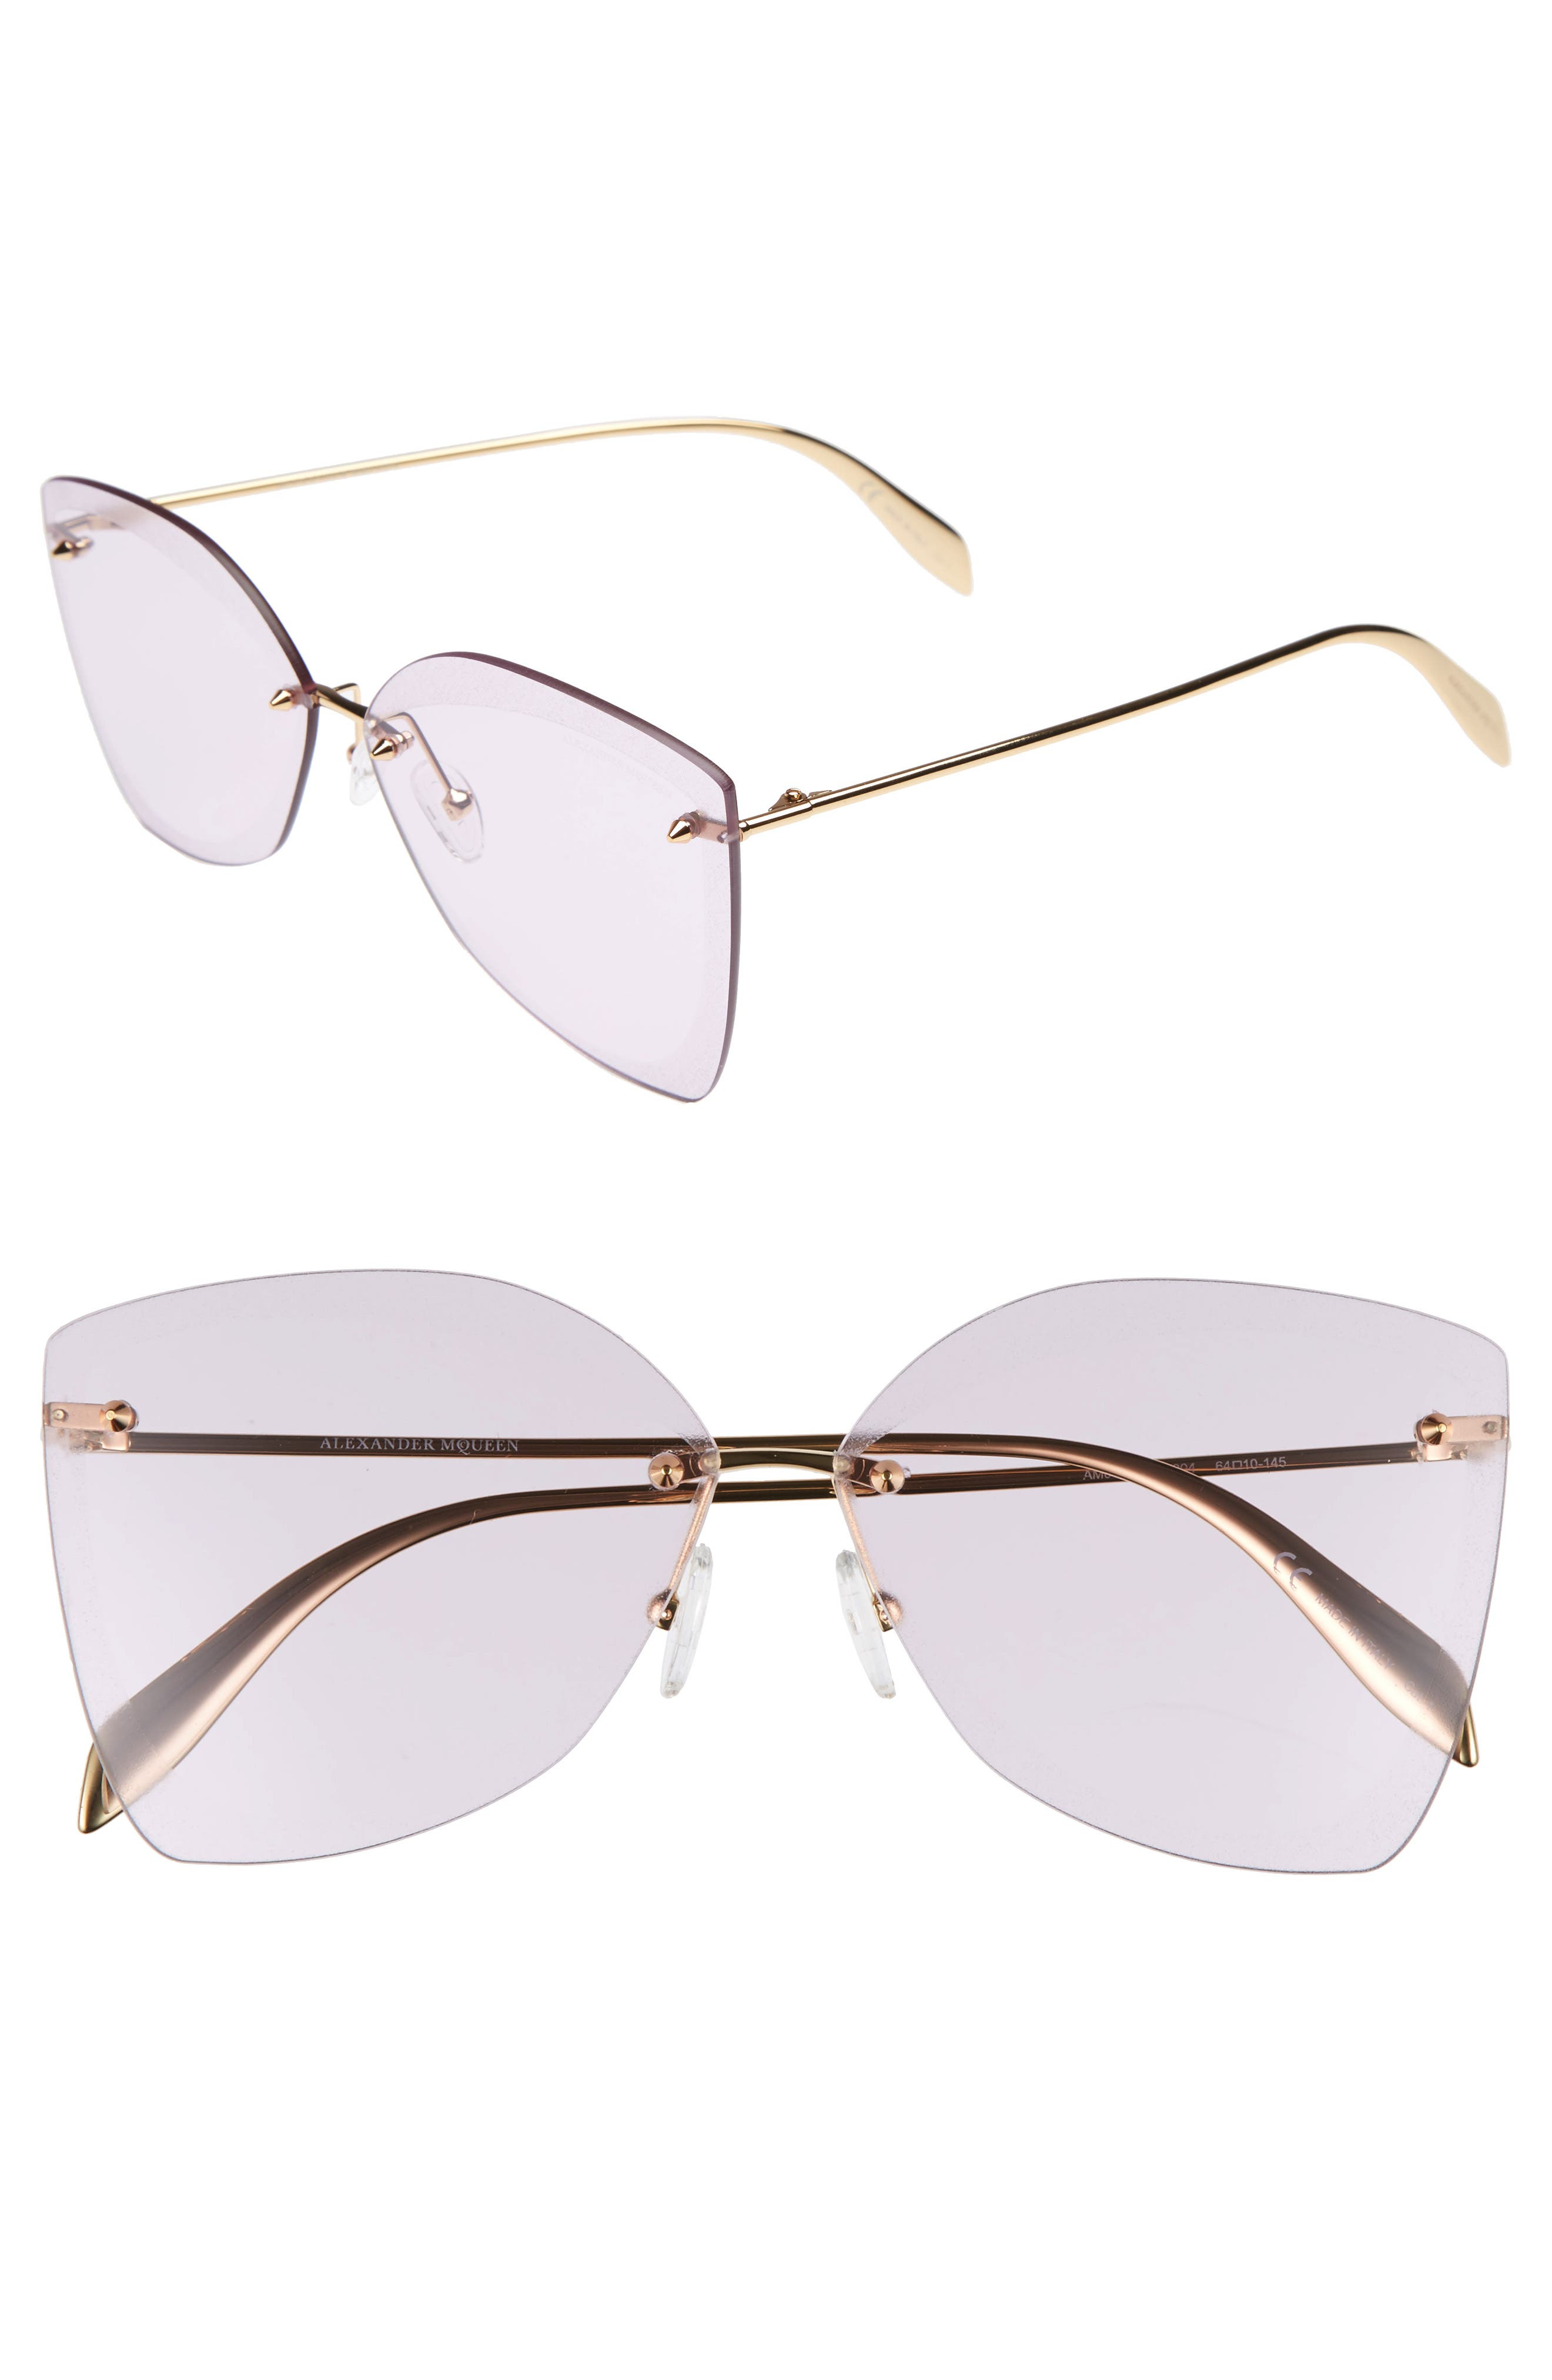 ALEXANDER MCQUEEN, 64mm Oversize Rimless Sunglasses, Main thumbnail 1, color, GOLD